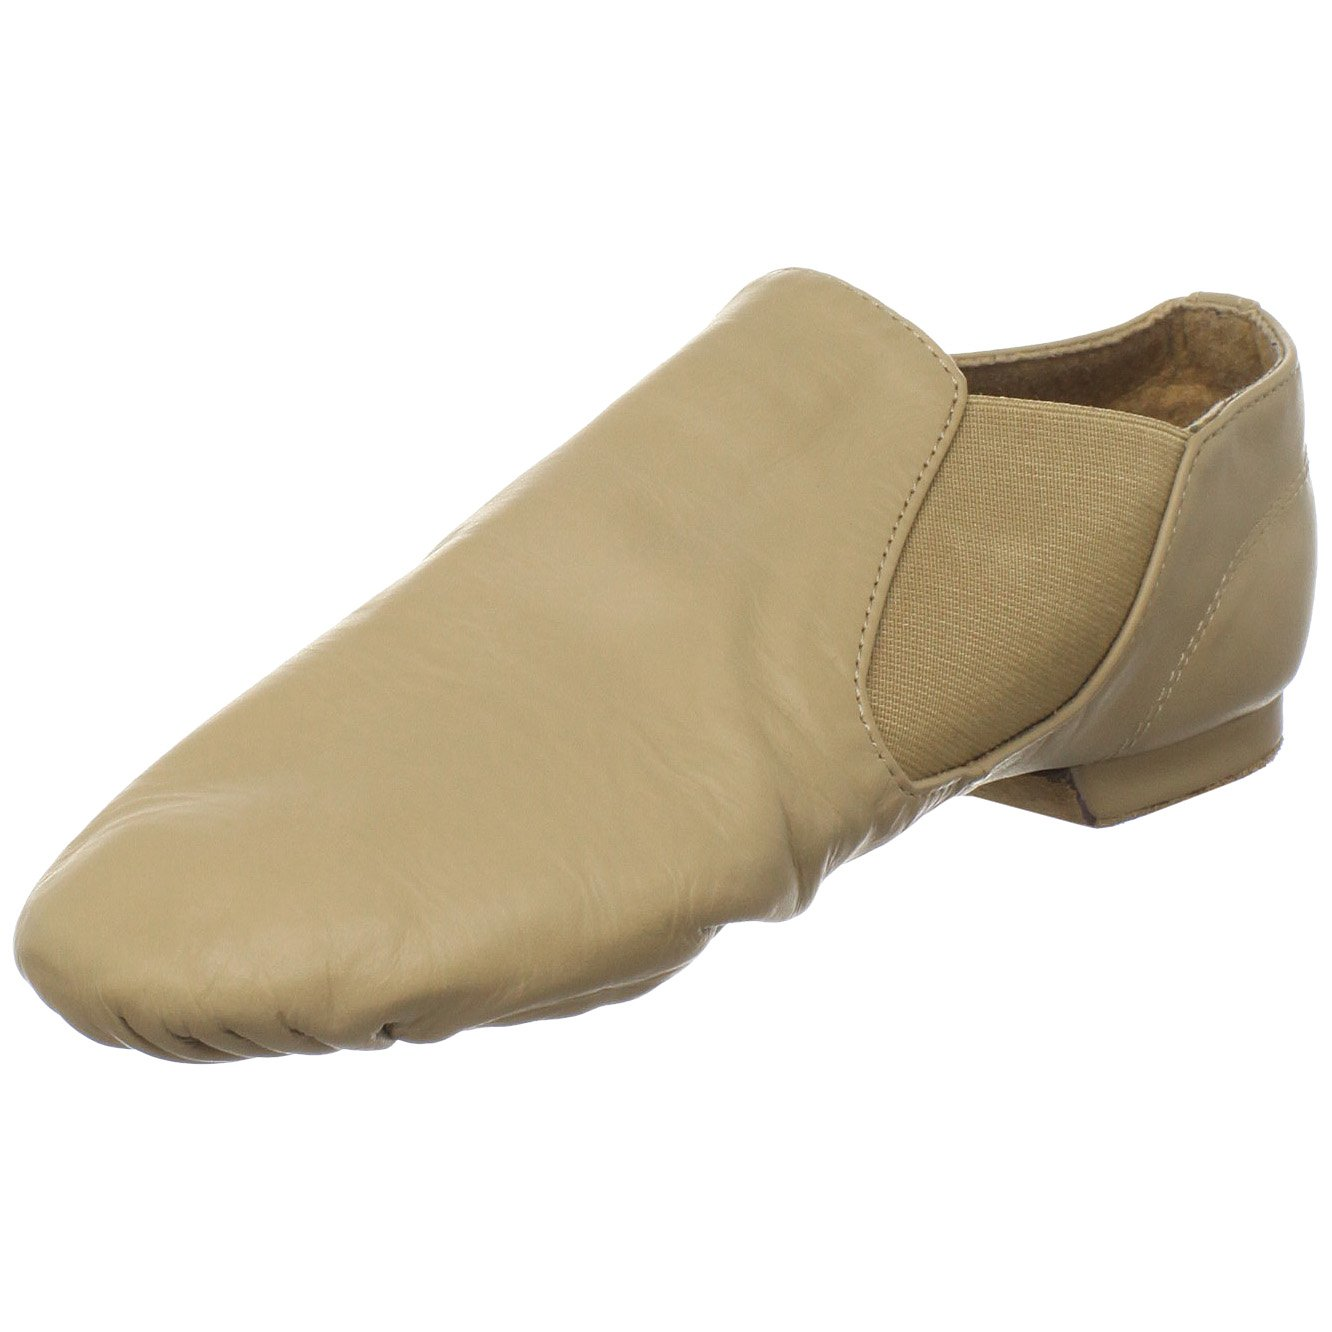 Sansha Moderno Leather Slip-On Jazz Shoe JS31L